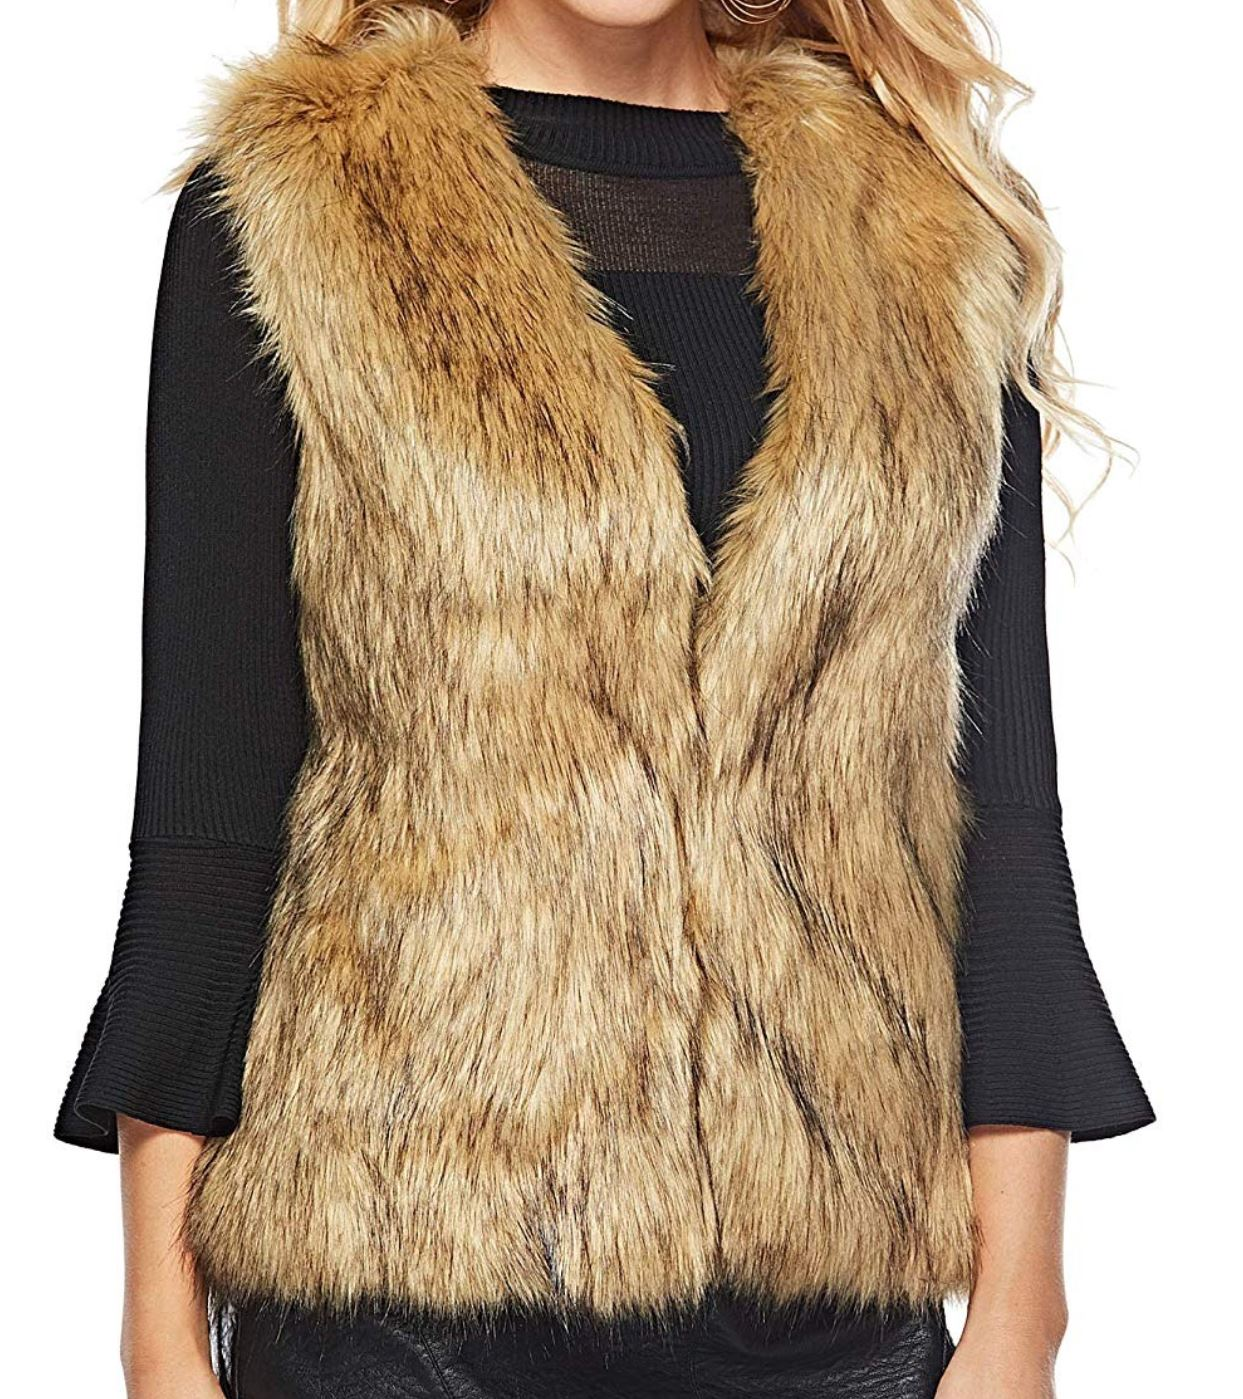 Fur Vest from amazon.com